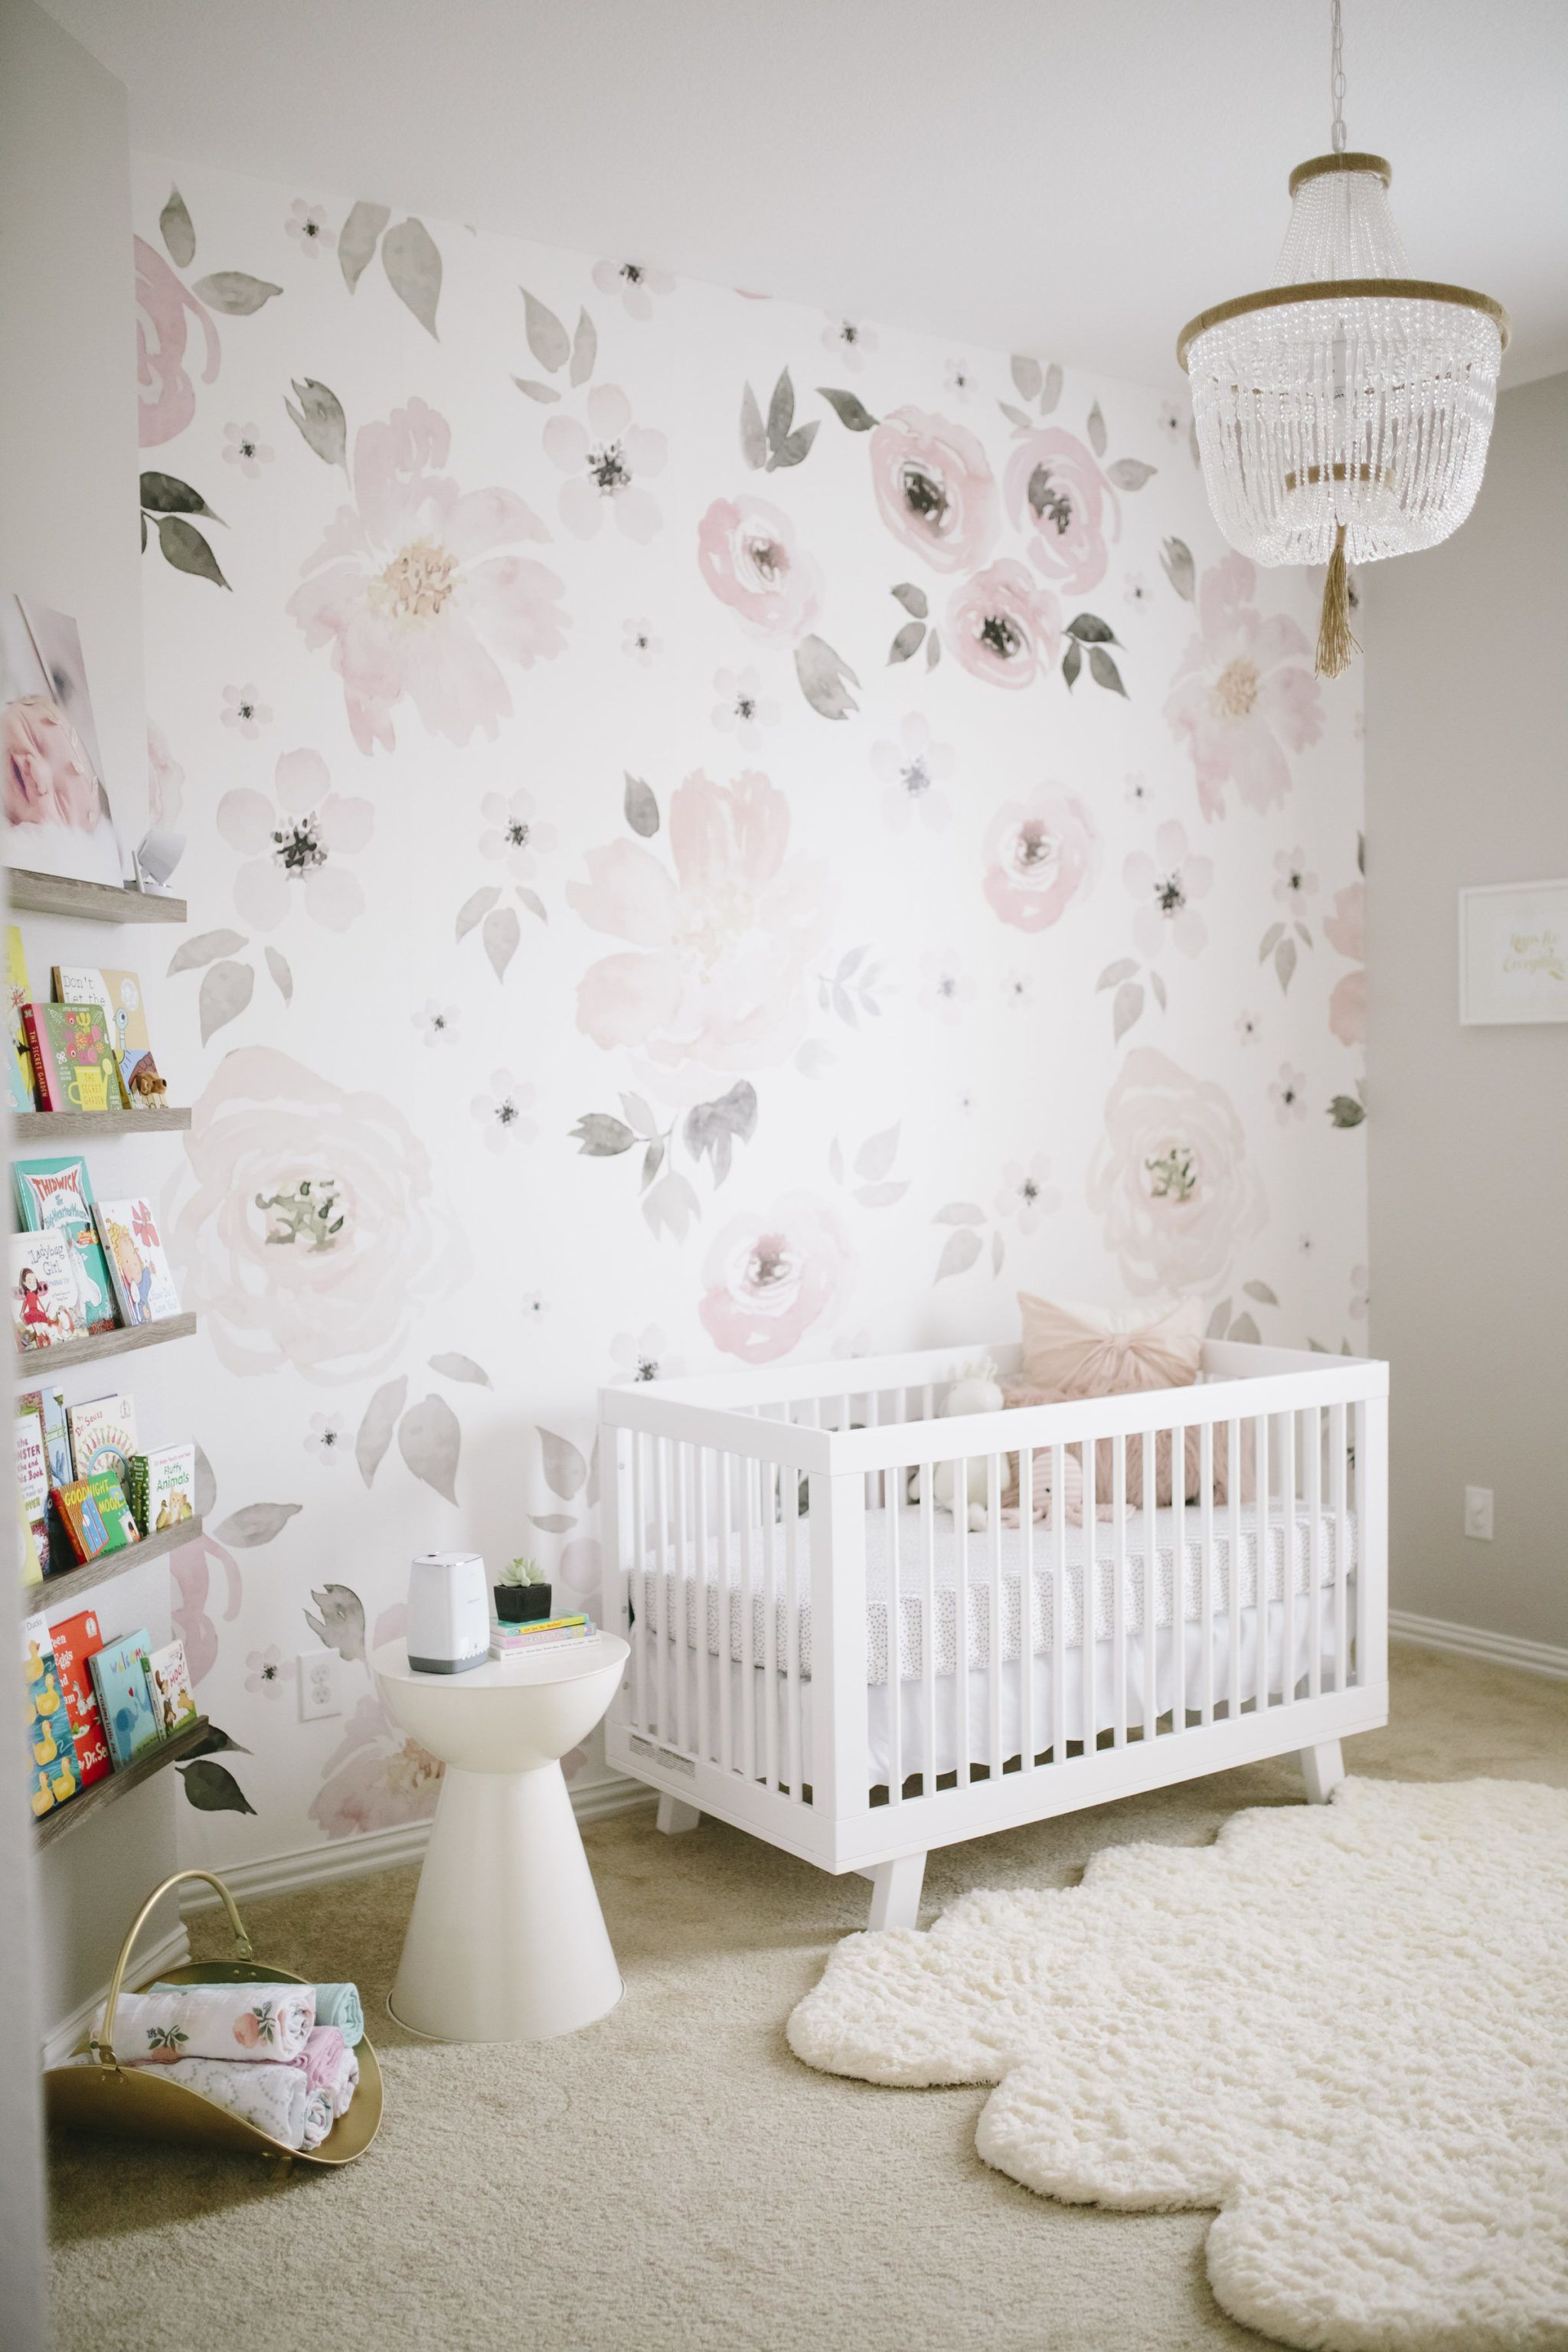 Fl Wallpaper In Pink And Gray Nursery